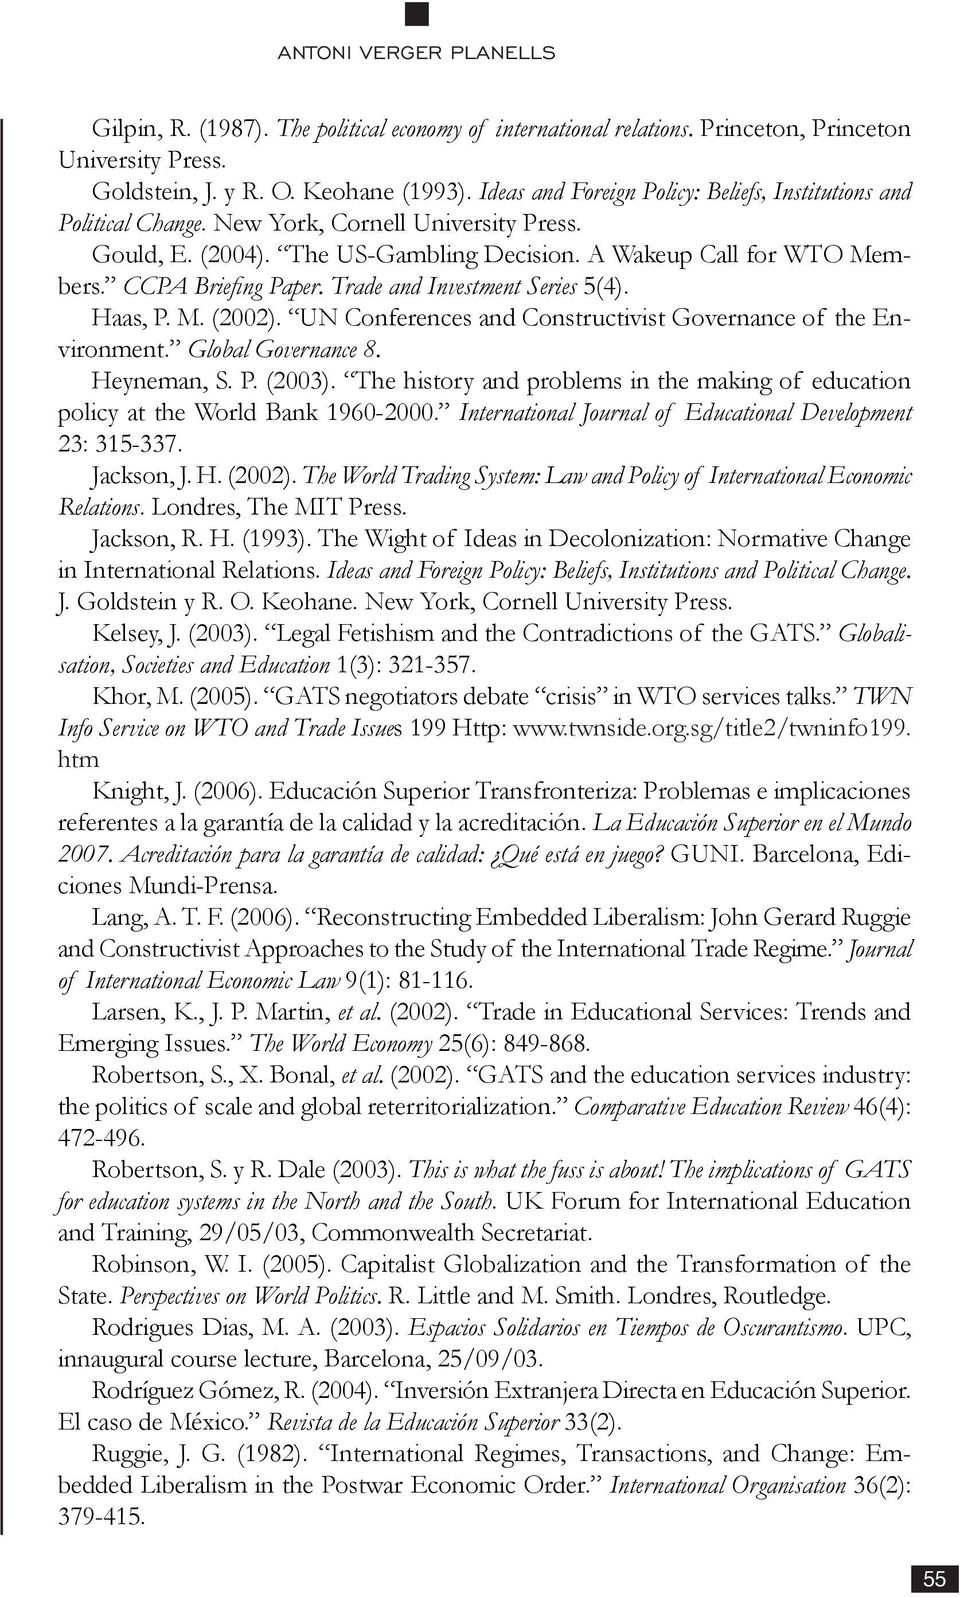 CCPA Briefing Paper. Trade and Investment Series 5(4). Haas, P. M. (2002). UN Conferences and Constructivist Governance of the Environment. Global Governance 8. Heyneman, S. P. (2003).